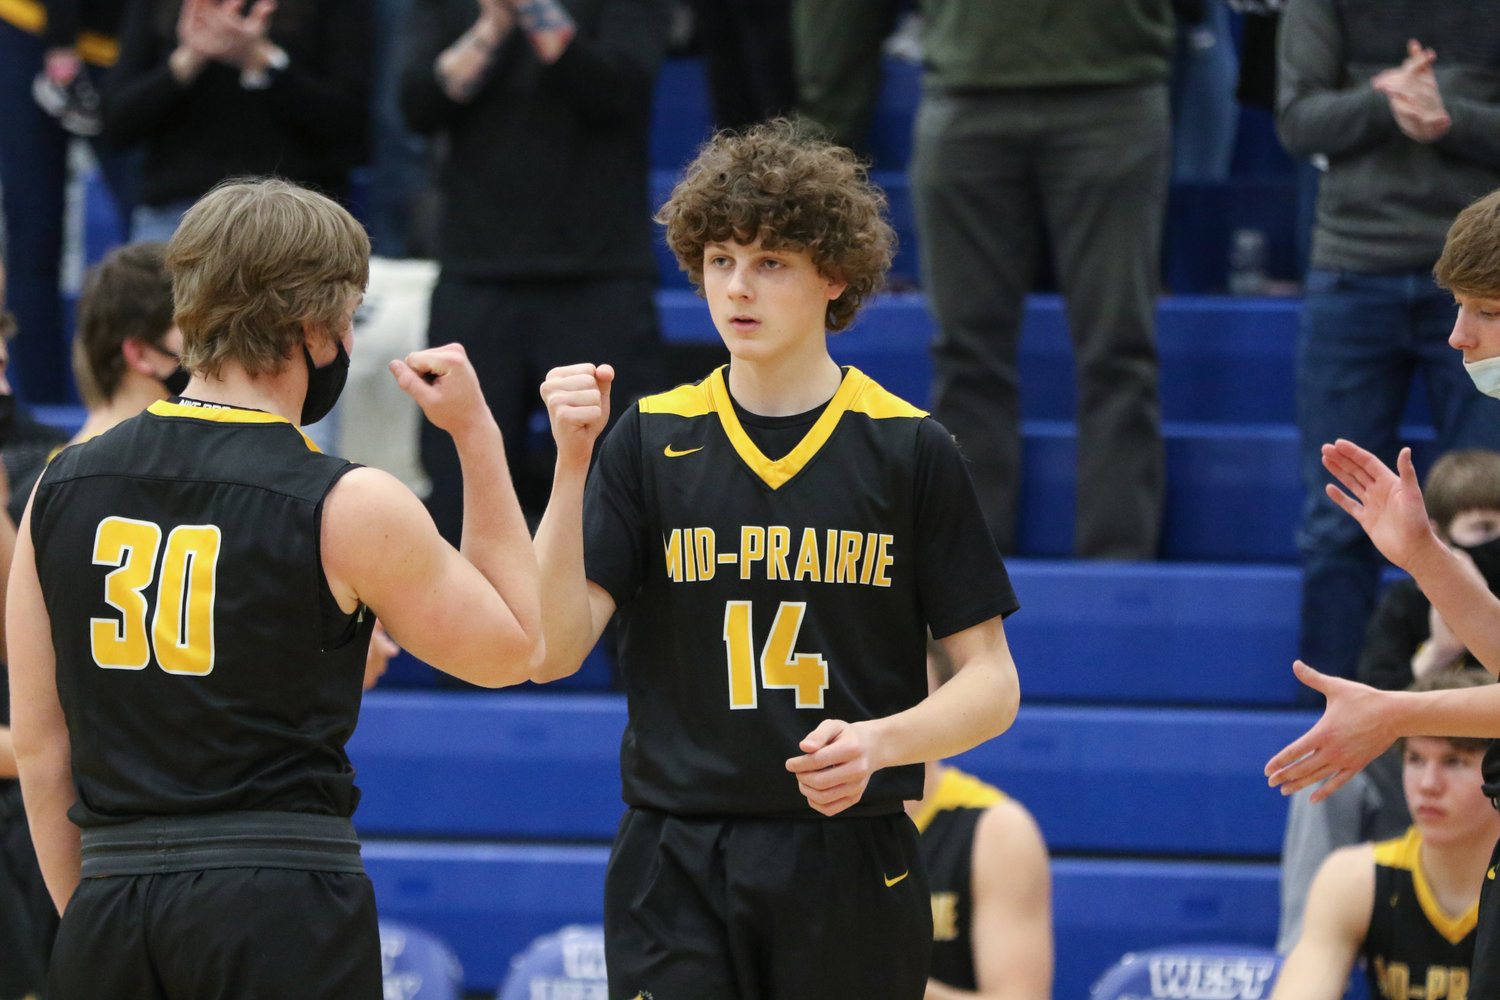 Best passing: Jack Pennington at West Liberty. Pennington did not score a point, but with 11 assists, he was still one of the top playmakers in Mid-Prairie's win over West Liberty on February 6.